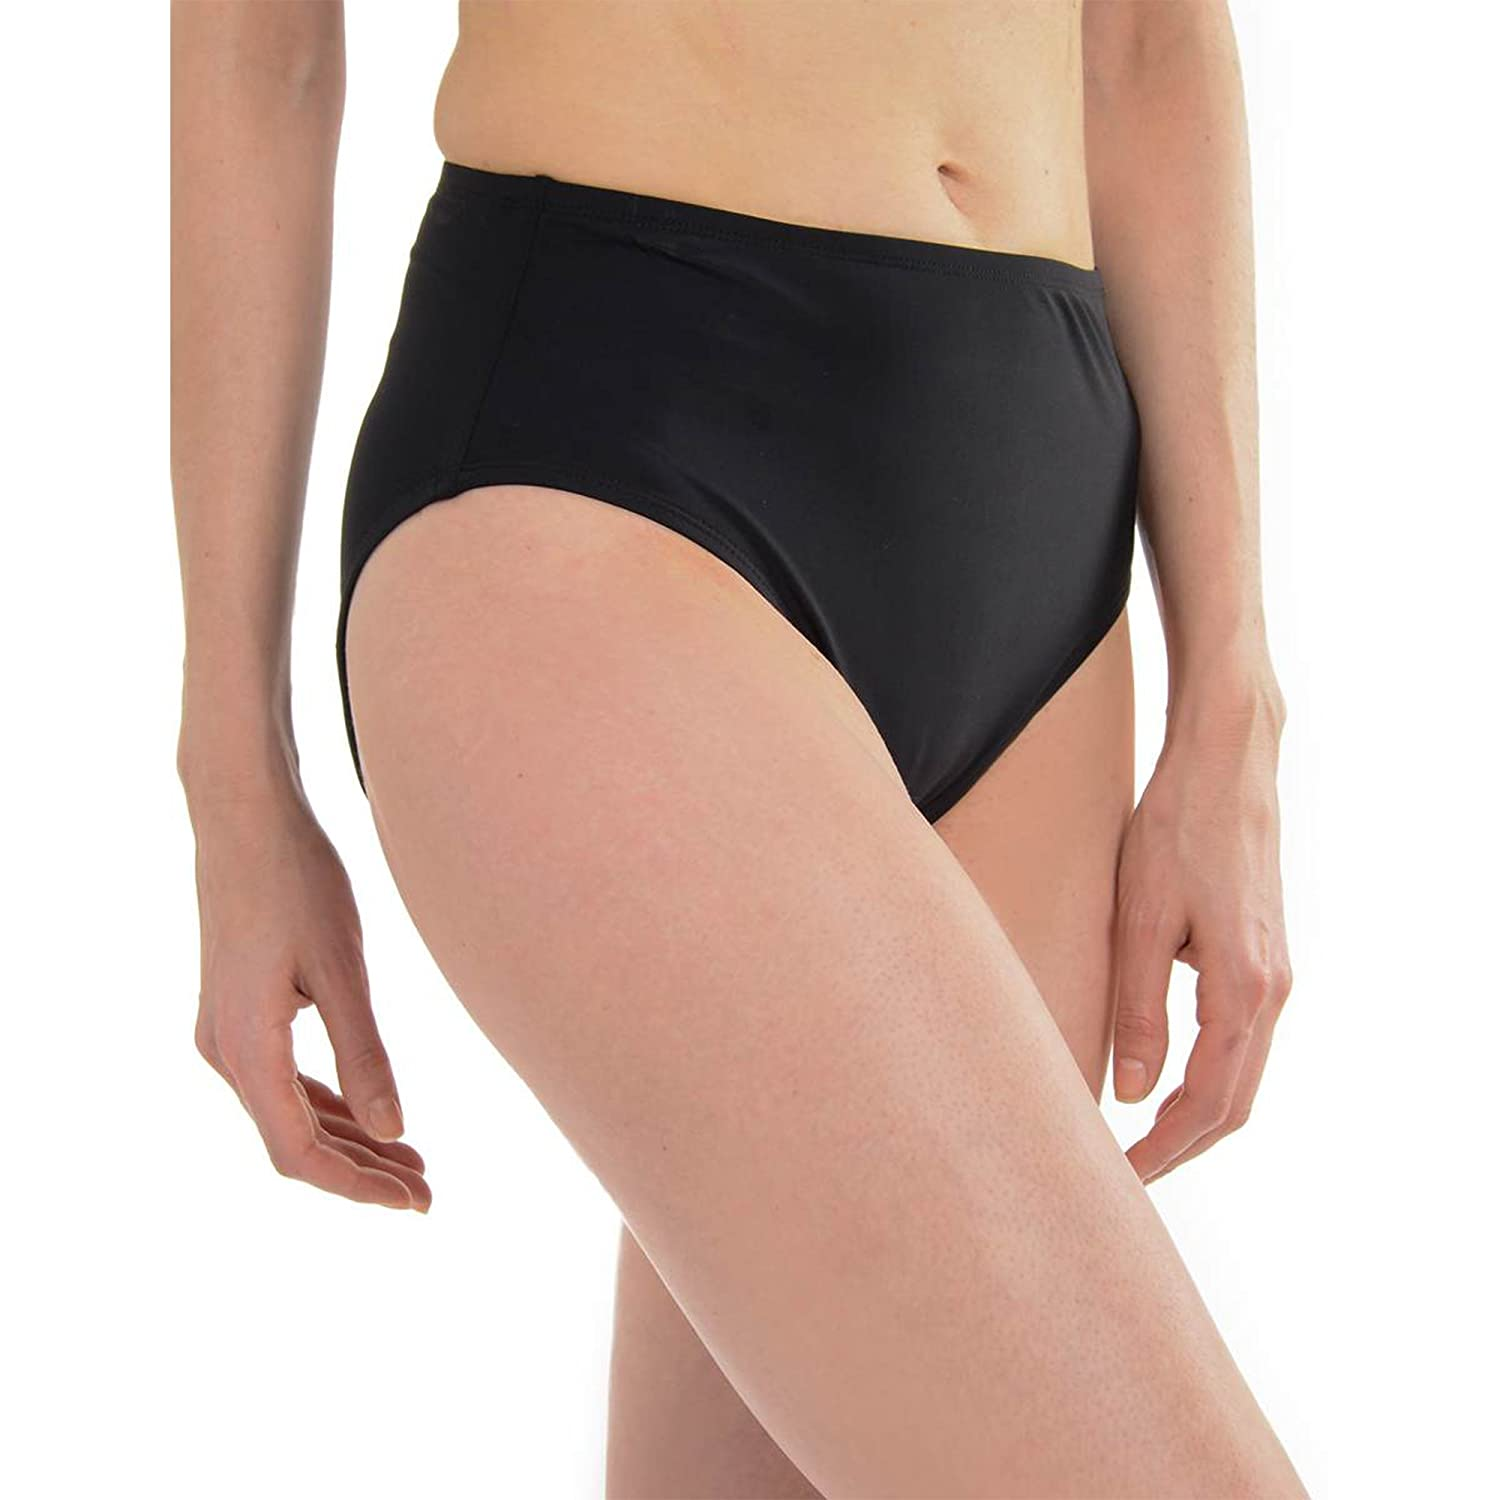 ce74d01a201 The Spanx Full Coverage Bikini Bottom slims and shapes for a flattering  swimwear look. Shapes the lower stomach